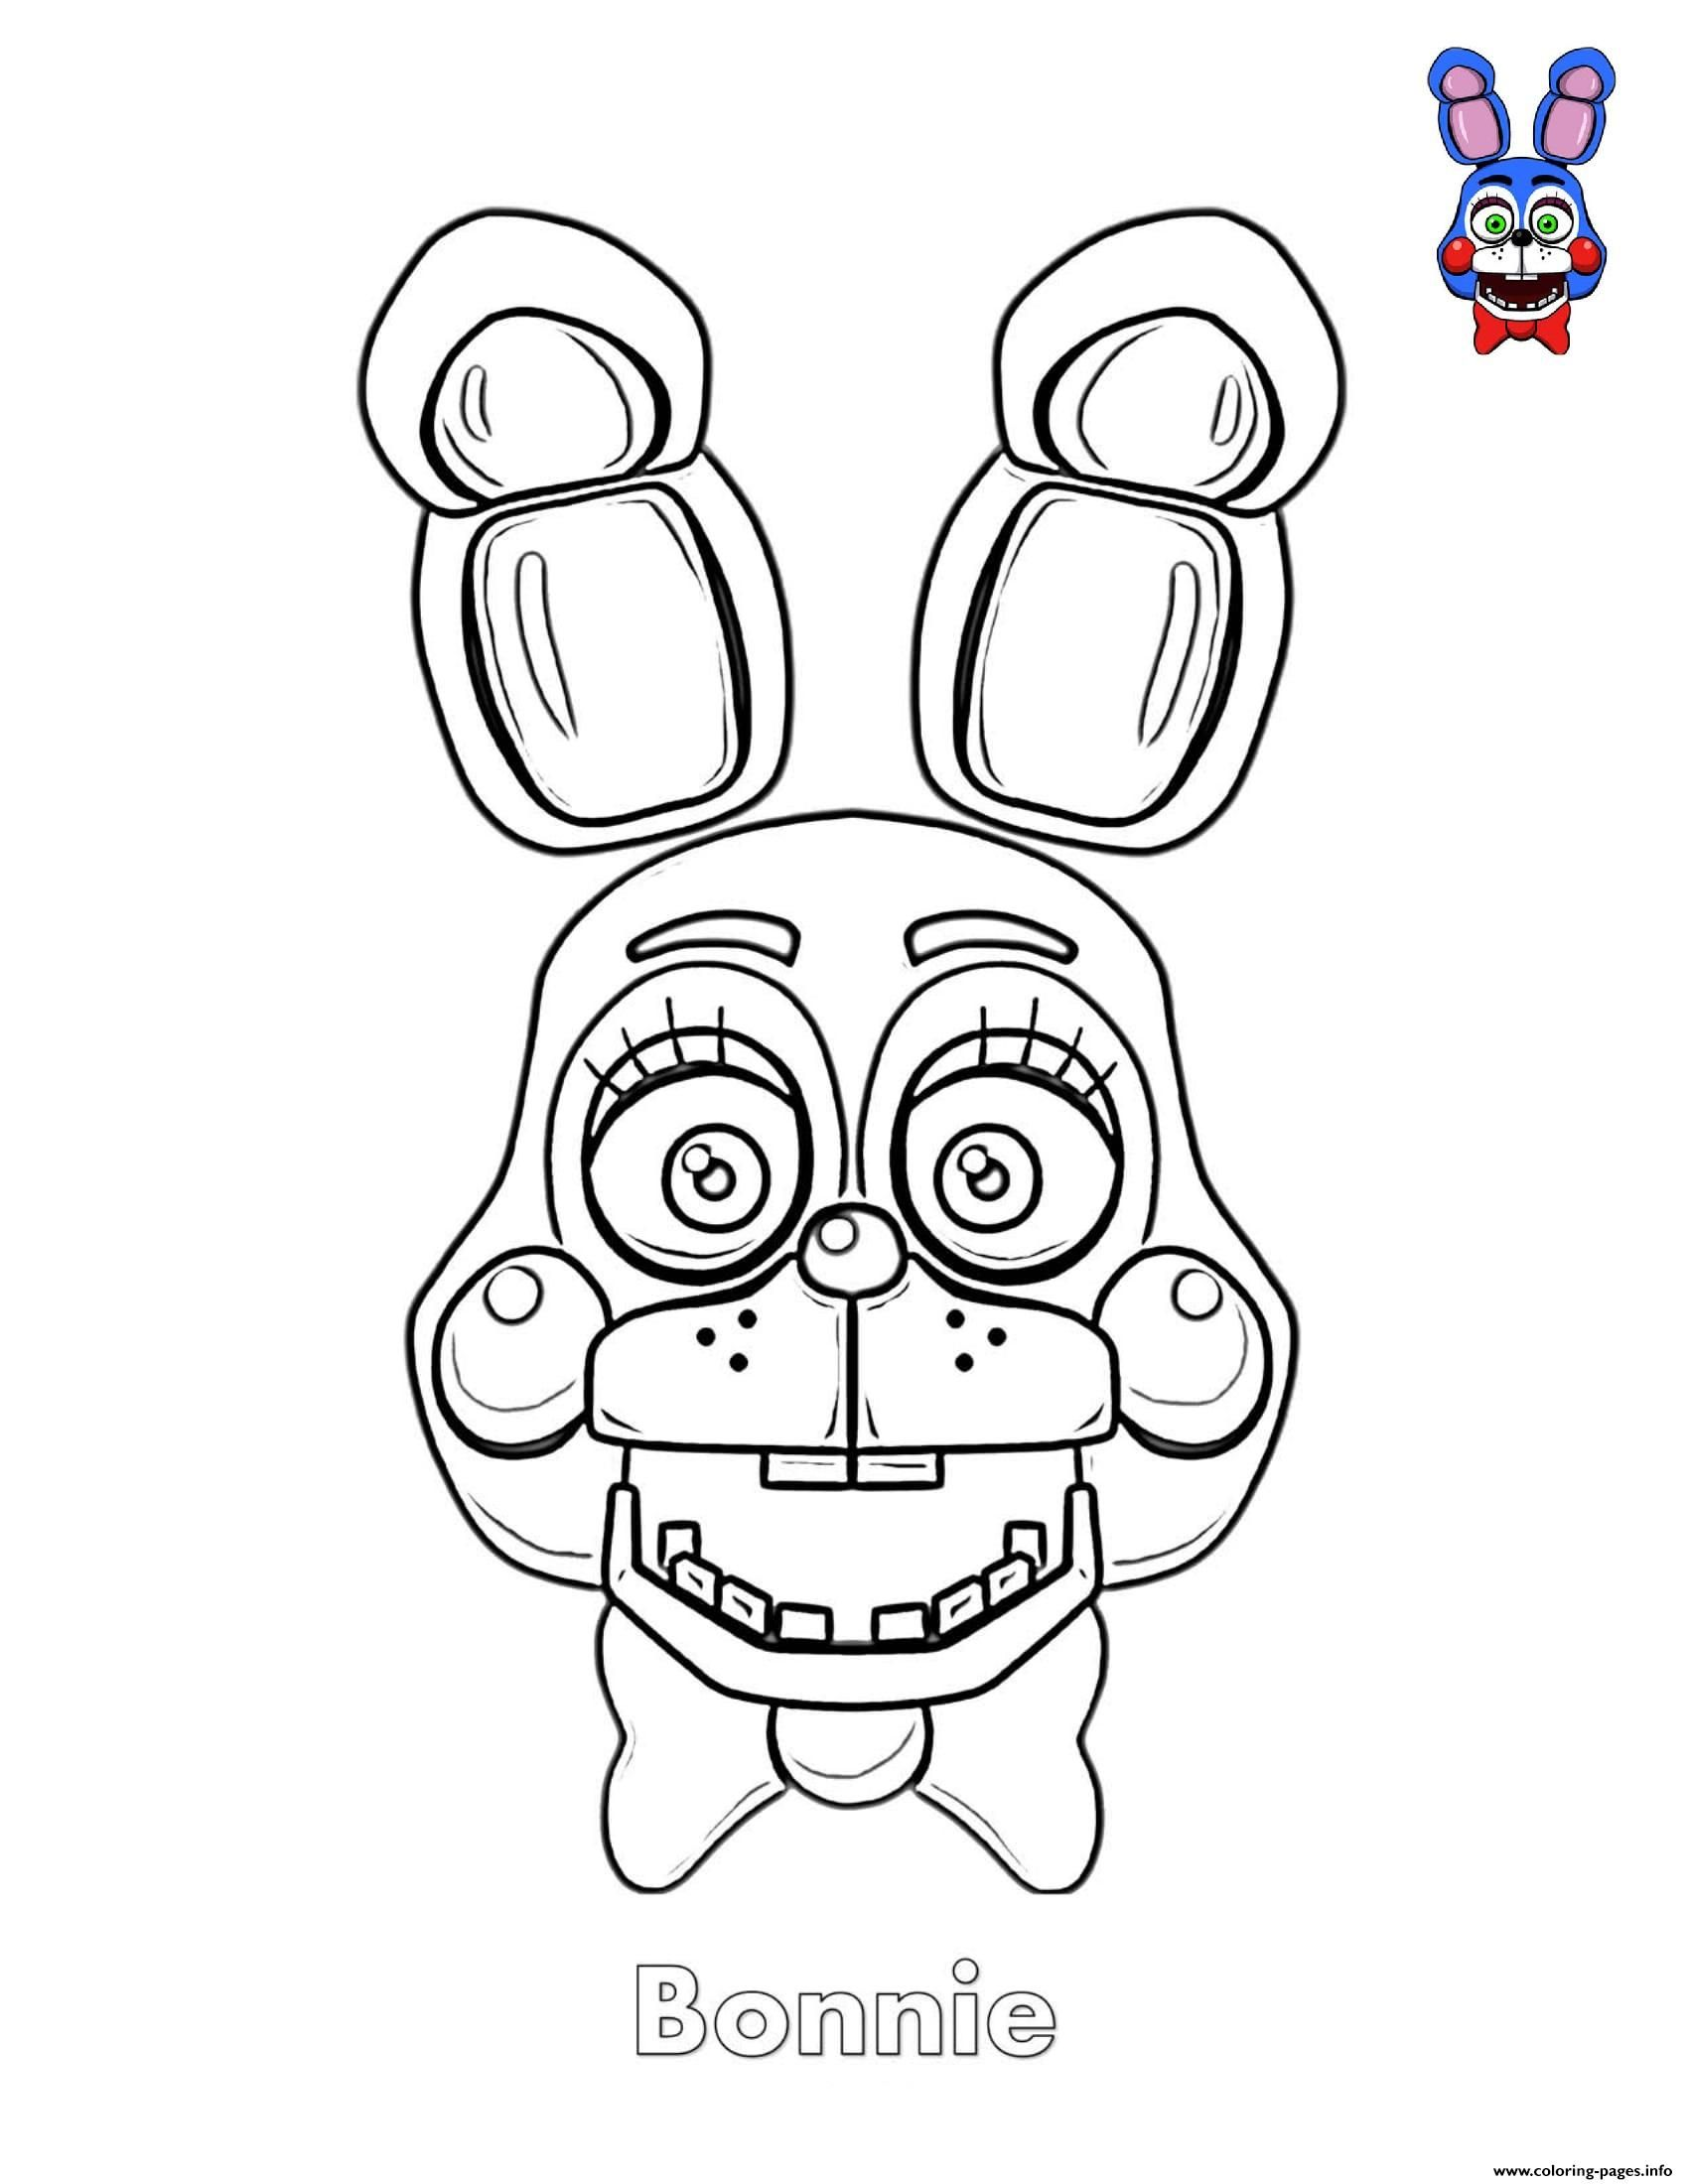 Print Bonnie Face Fnaf Coloring Pages Coloring Pages Printable